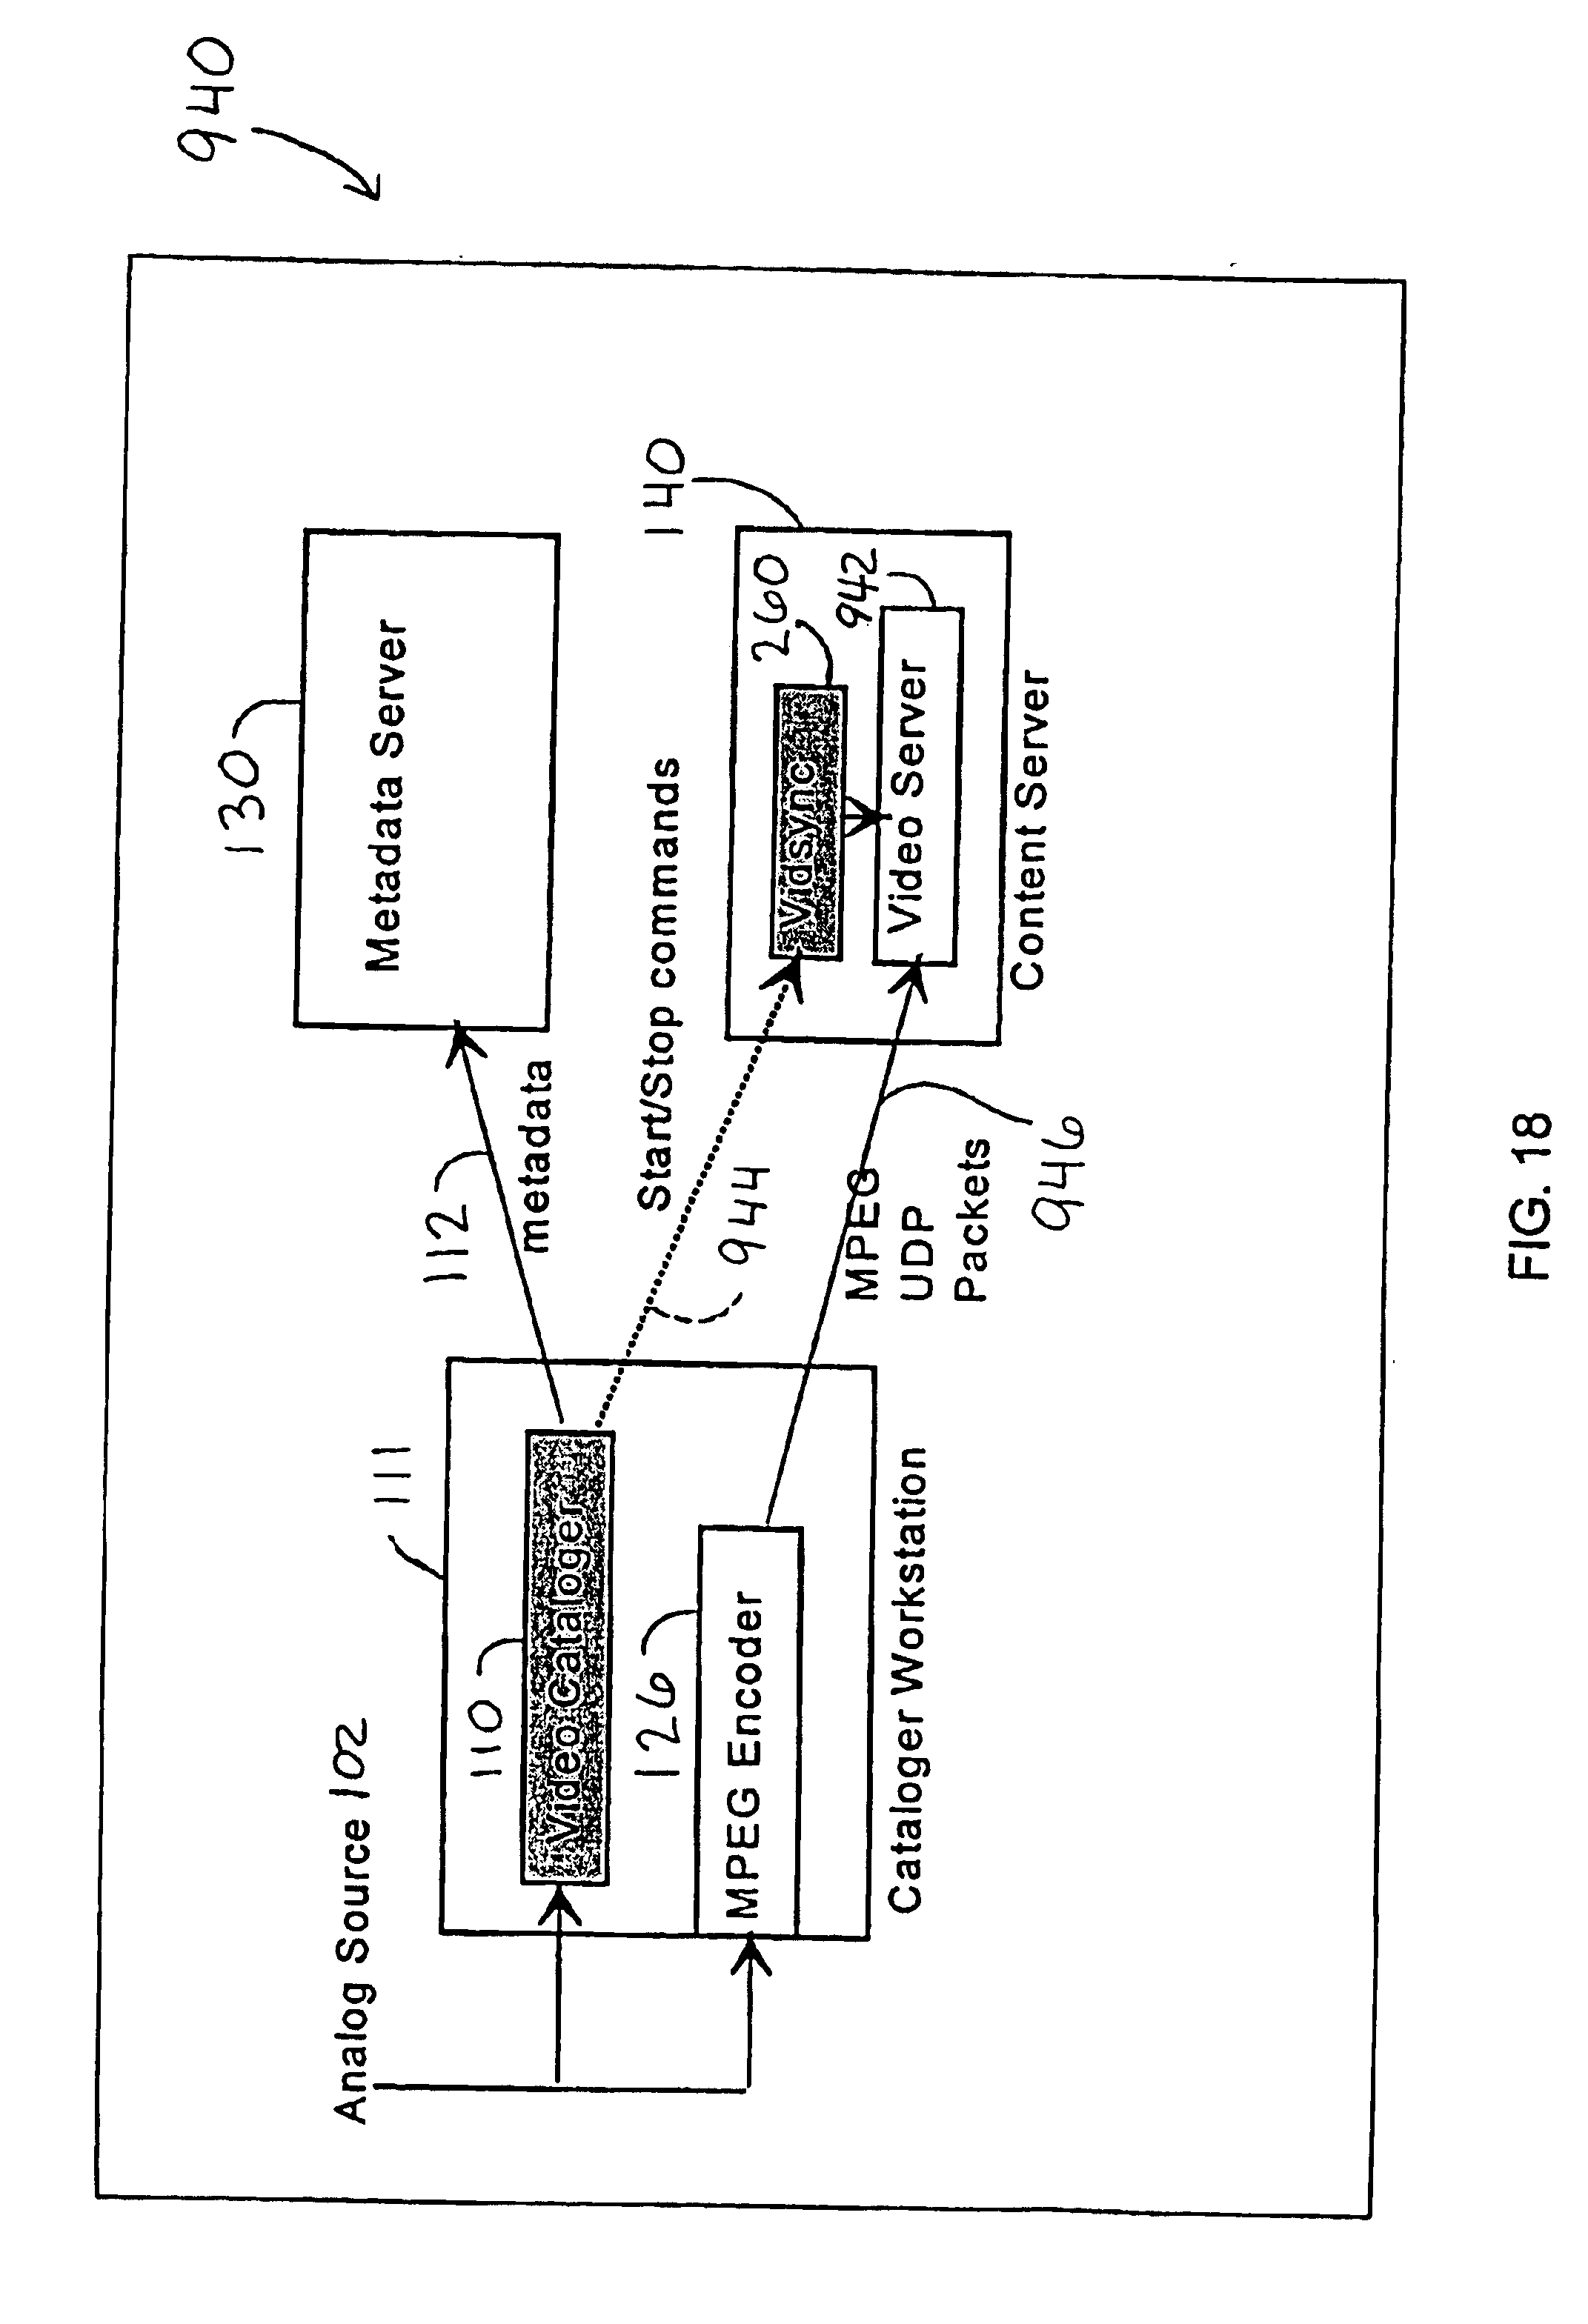 Patent us6877134 integrated data and real time metadata capture patent drawing nvjuhfo Gallery